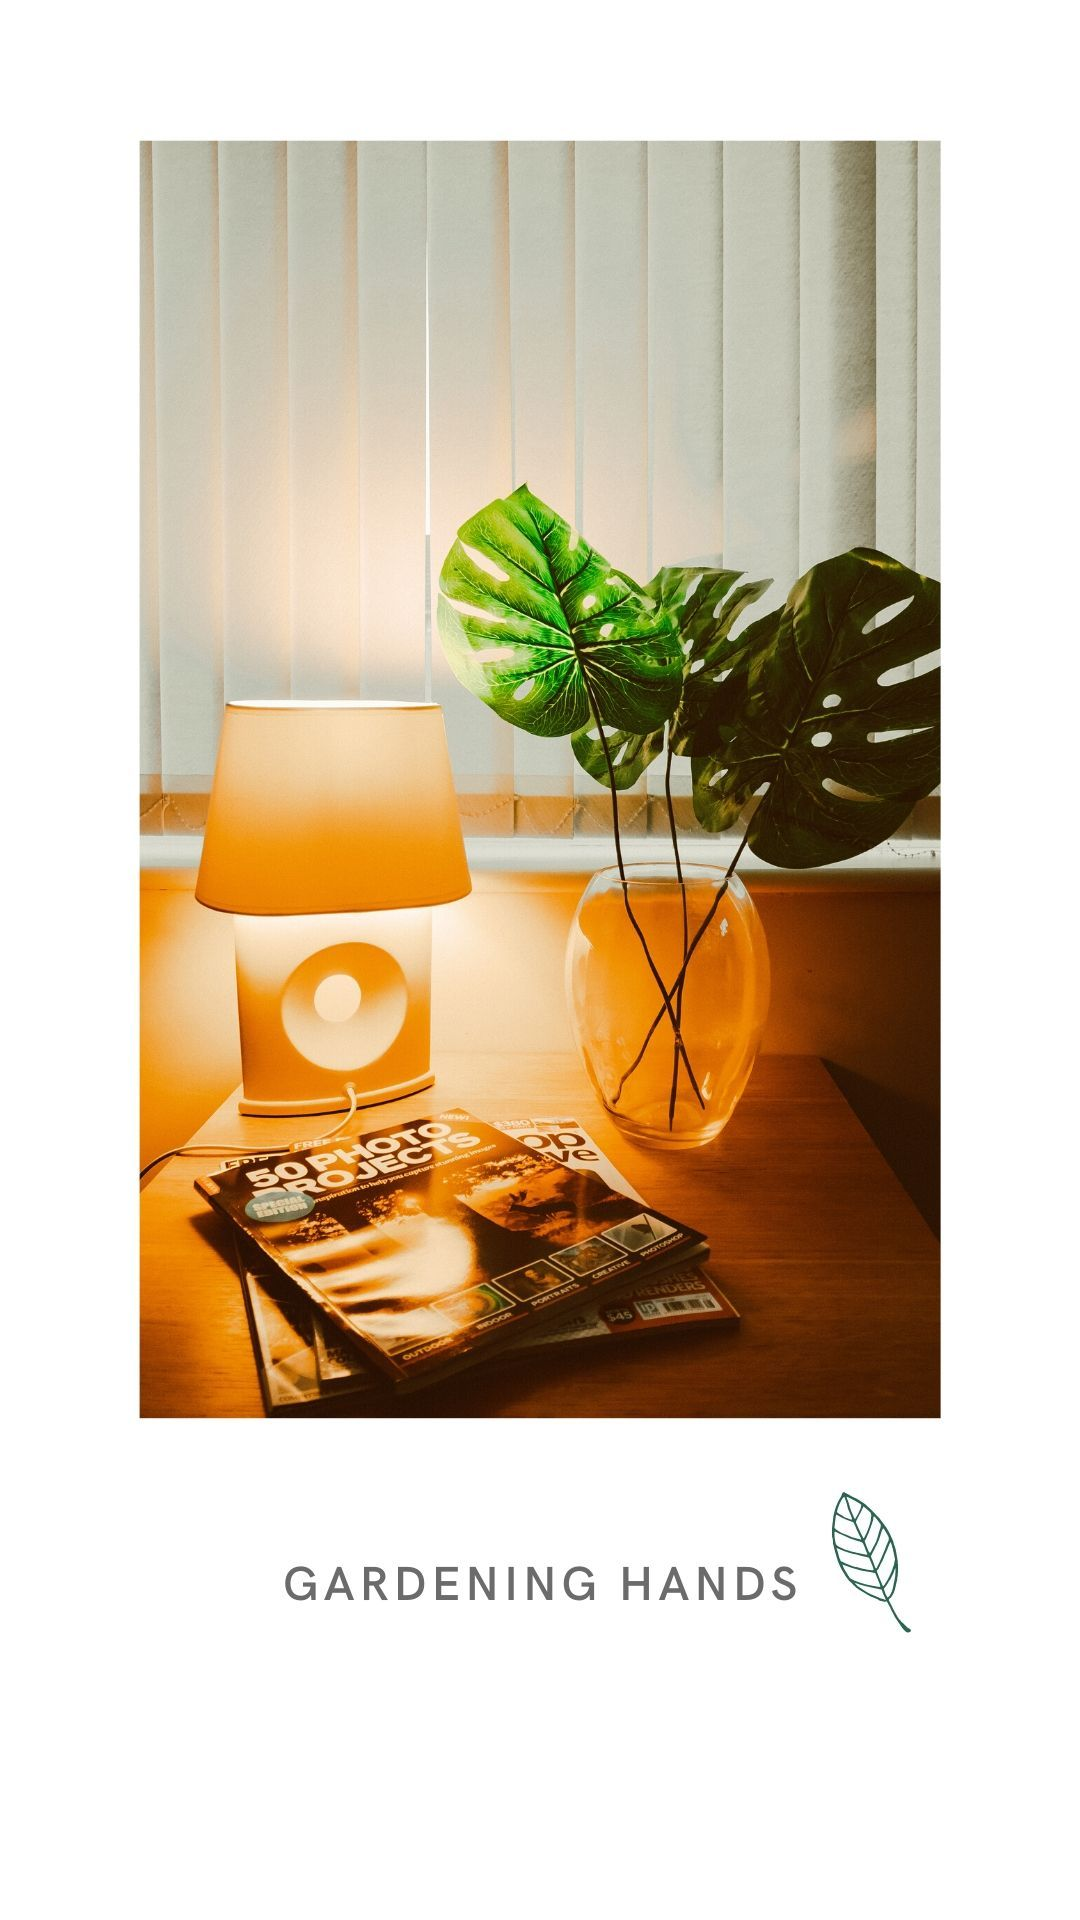 monstera leaves look beautiful and grow beautifully indoors. To know more about houseplants visit the link #houseplants #indoorgarden #homegarden #monstera #leaves